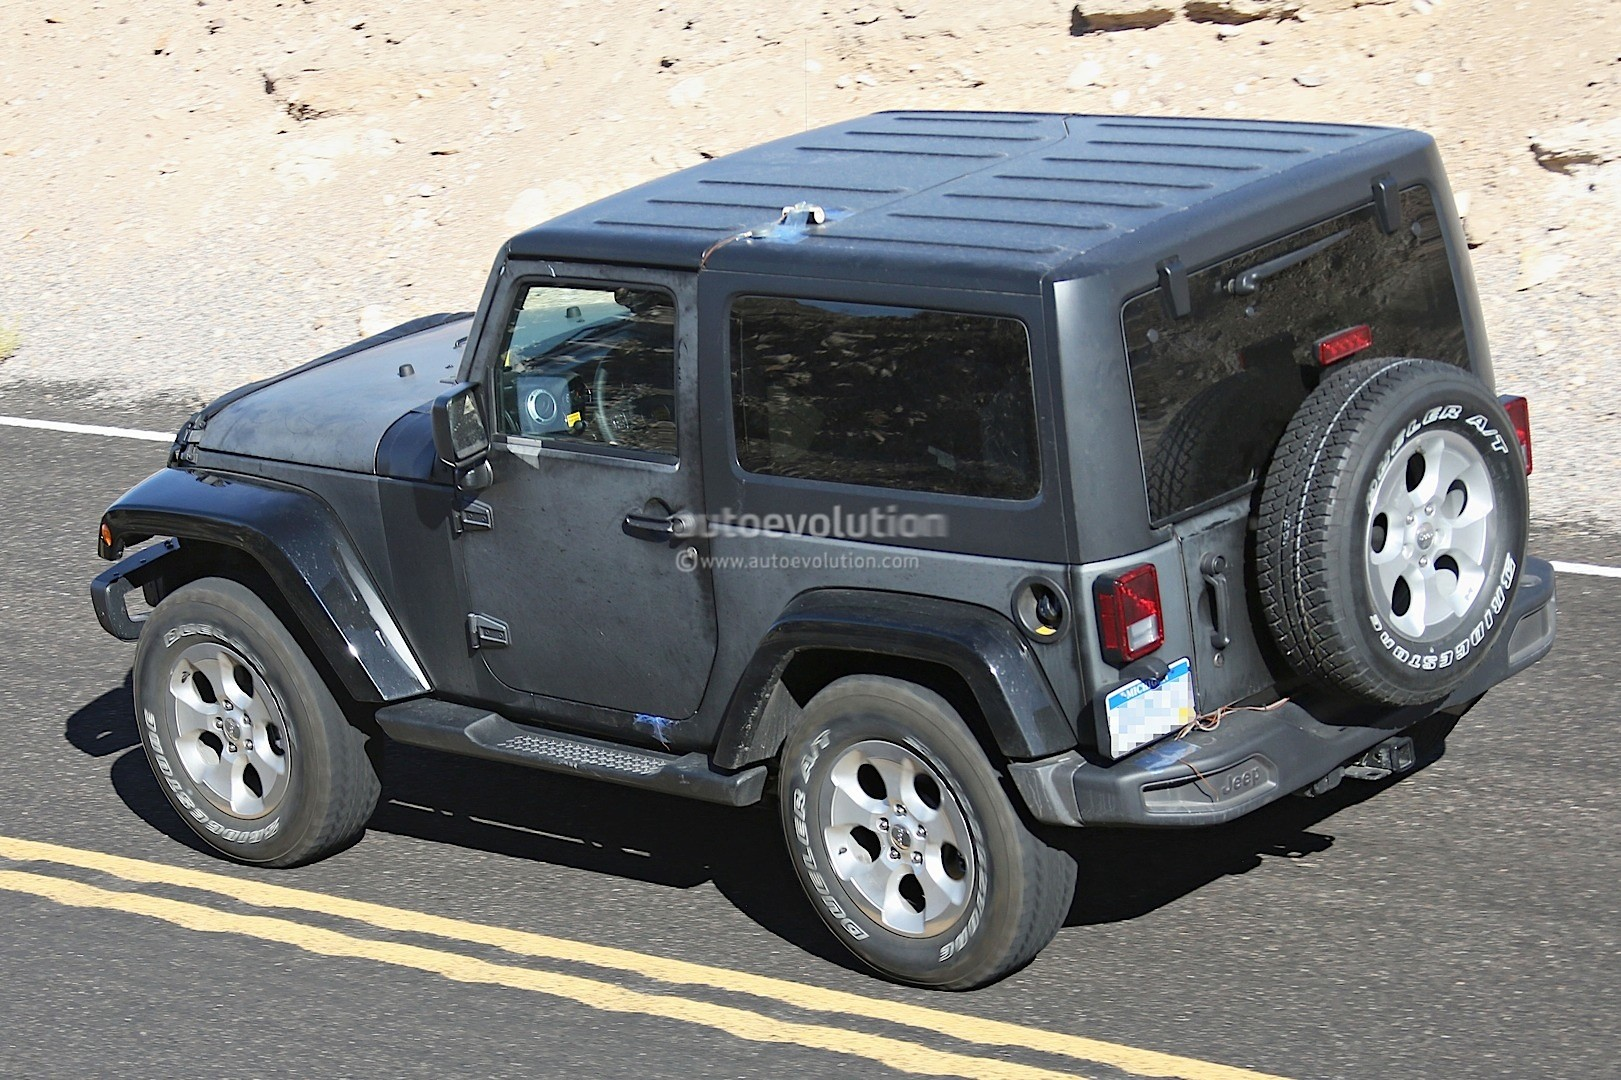 2018 Jeep Wrangler Jl With Six Speed Manual Transmission